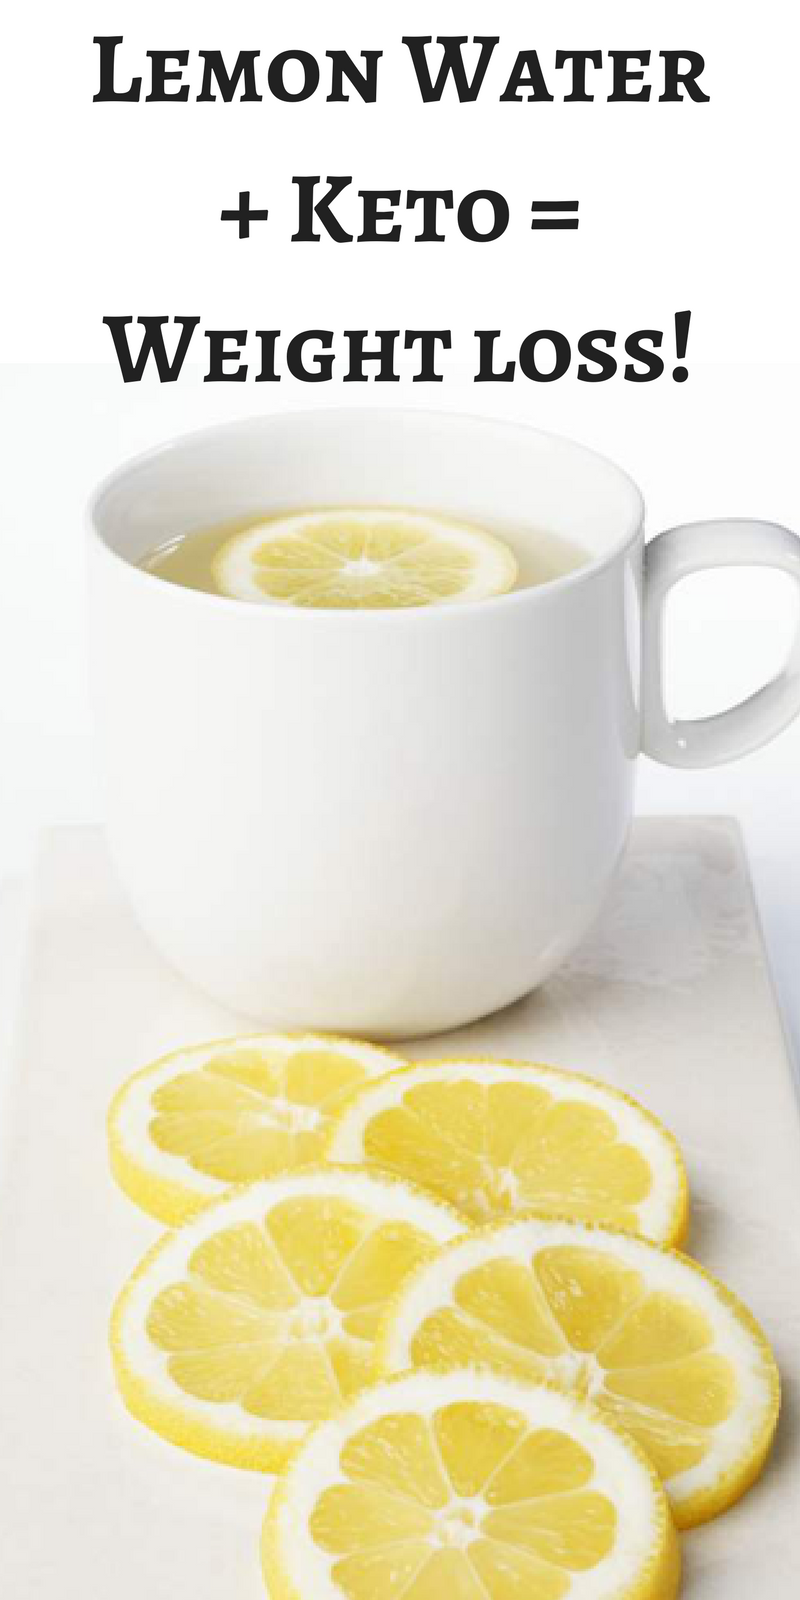 Lose More Weight By Drinking Lemon Water On A Keto Diet ...